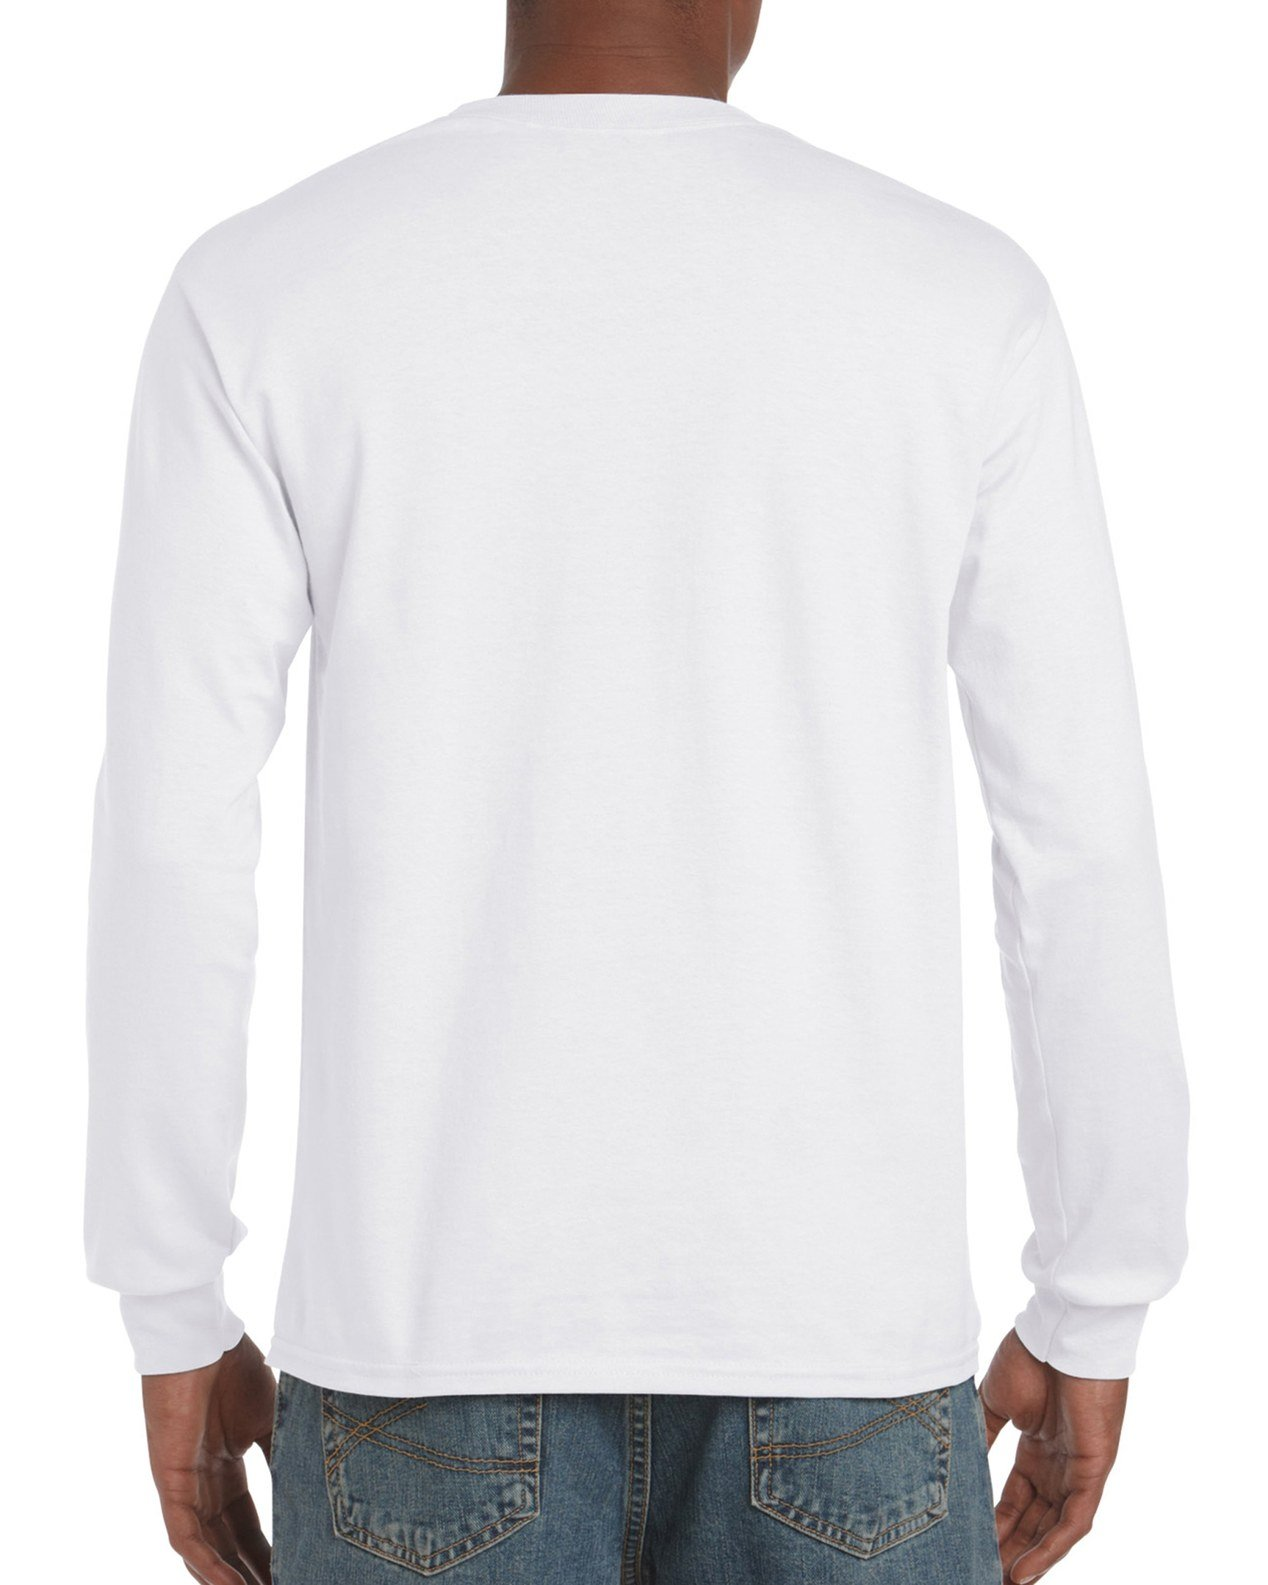 Gildan Men's Ultra Cotton Adult Long Sleeve T-Shirt, 2-Pack, White Large by Gildan (Image #2)